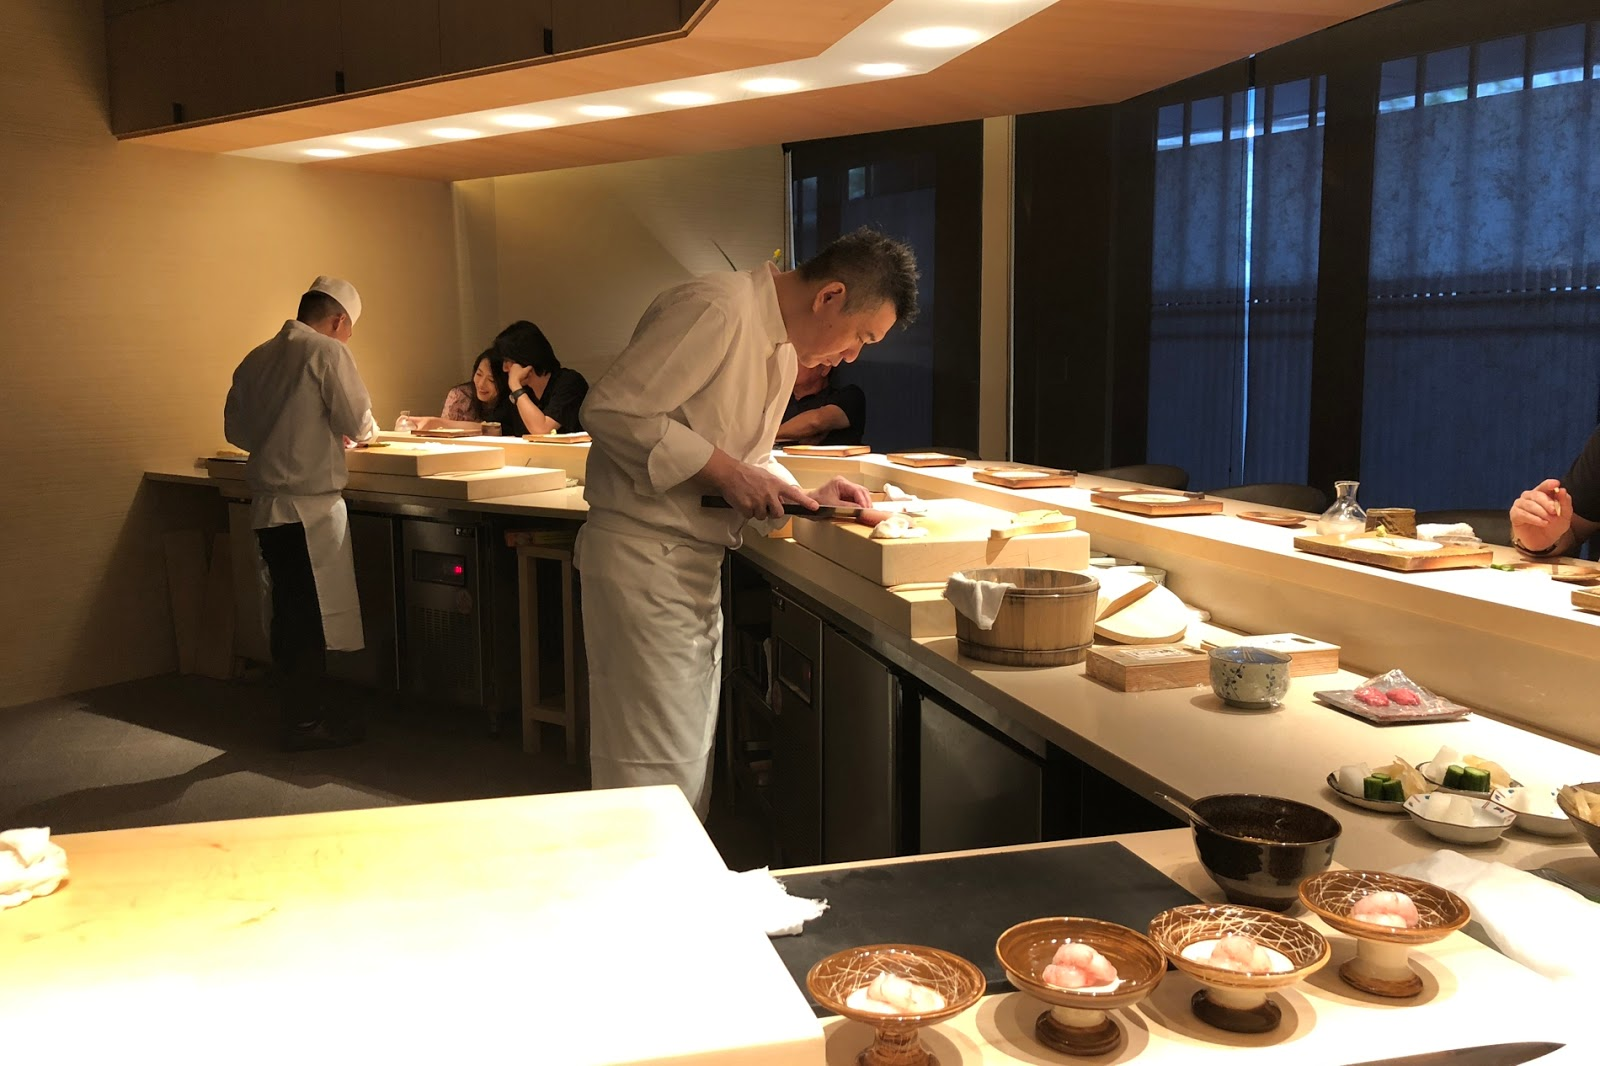 New Sushi Place In Taipei Joie De Vivre Blog By G4gary